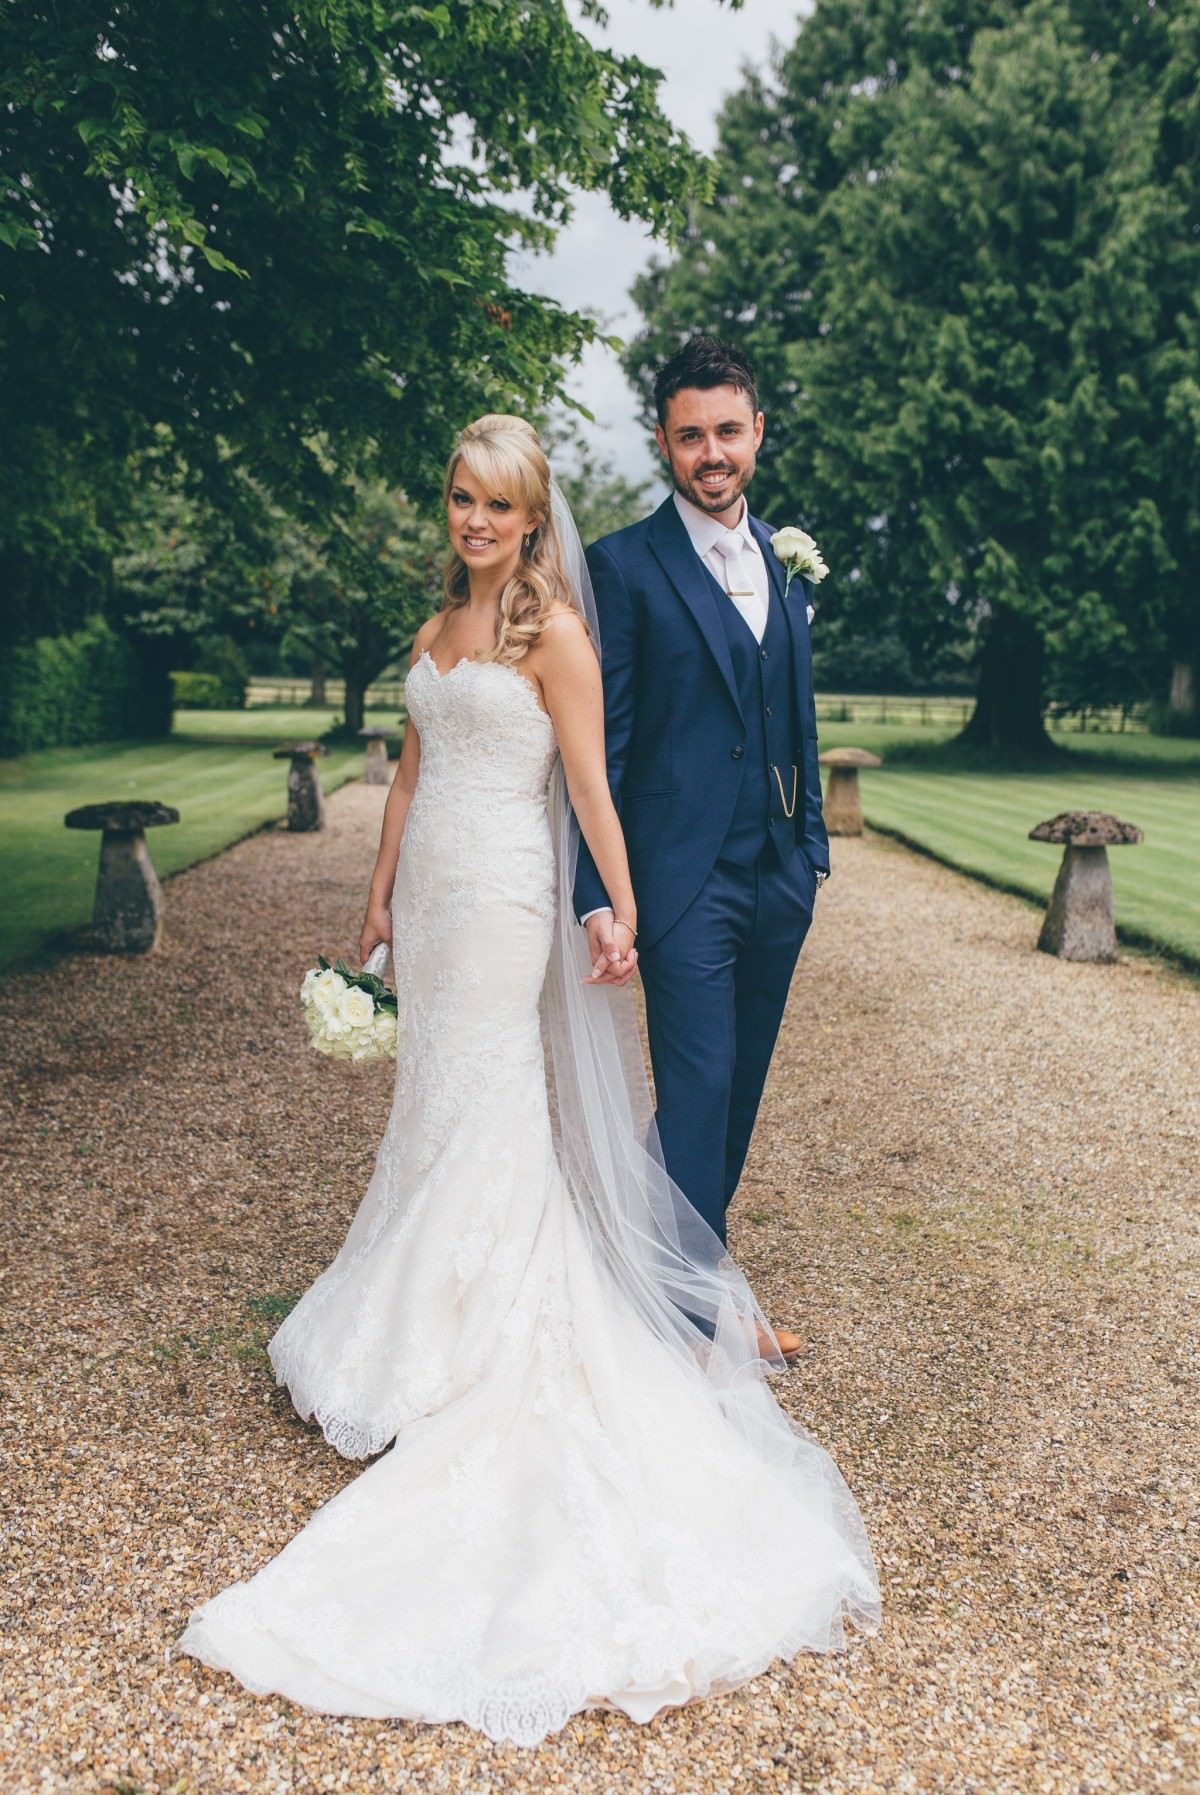 welsh_wedding_photographer_rachel_lambert_photography_lower_slaughter_manor_house_cotswolds_harriet_dean_ 30